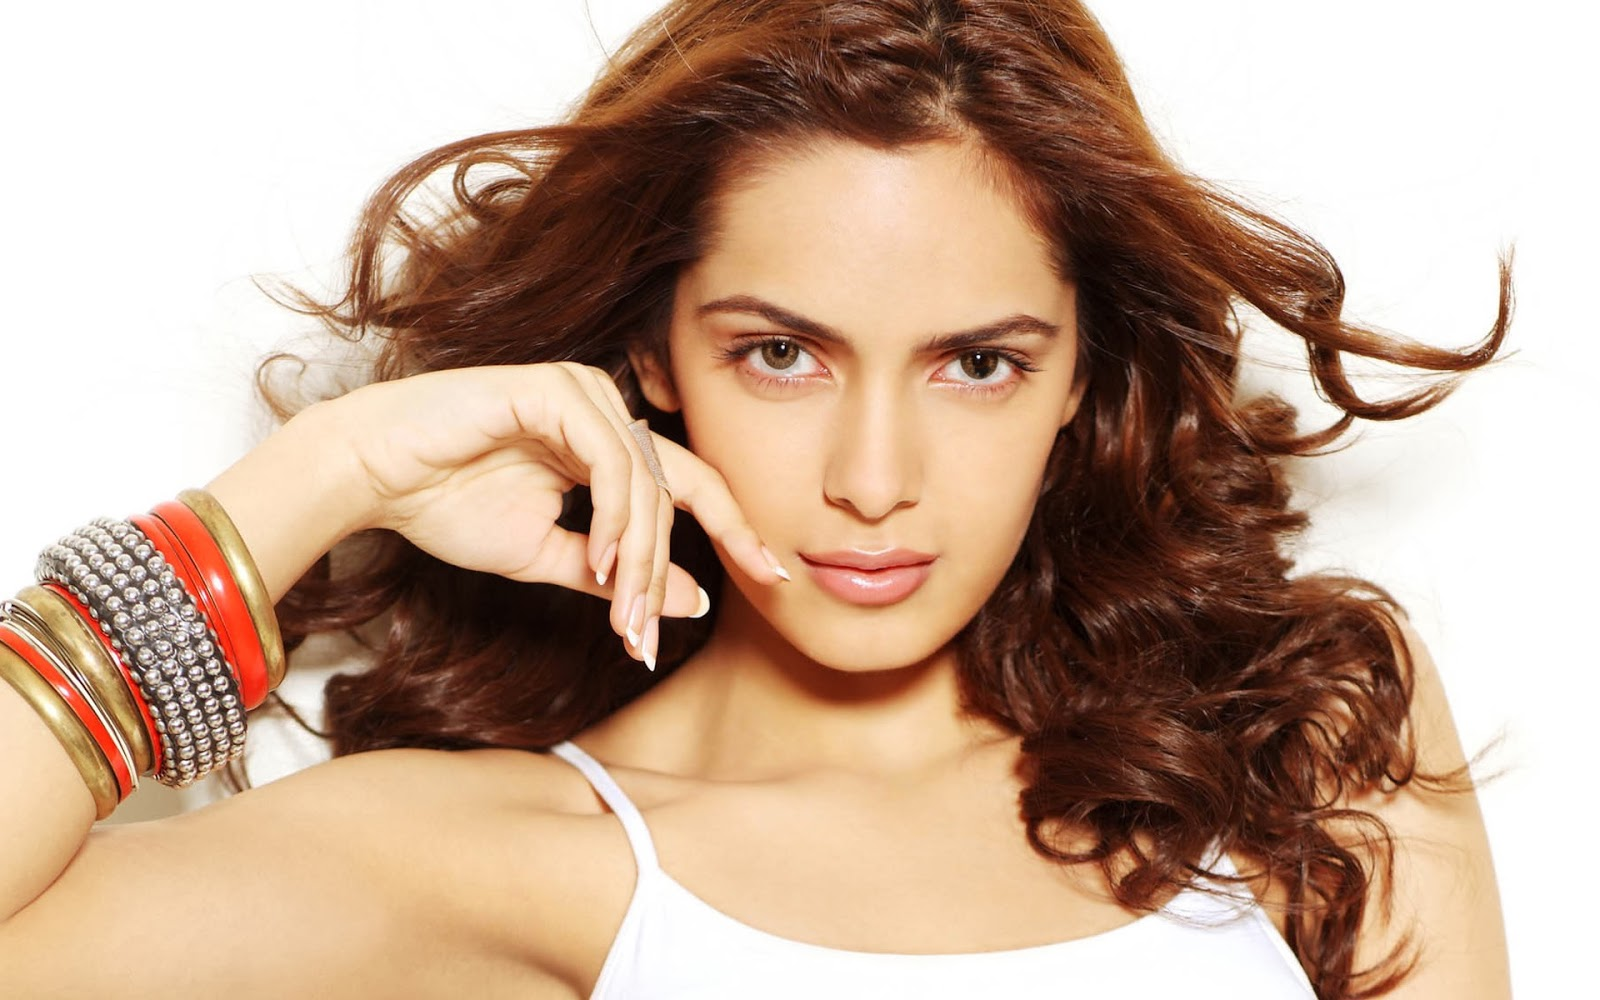 SHAZAHN PADAMSEE_WALLSTOWN_IN_BOLLYWOOD ACTRESS